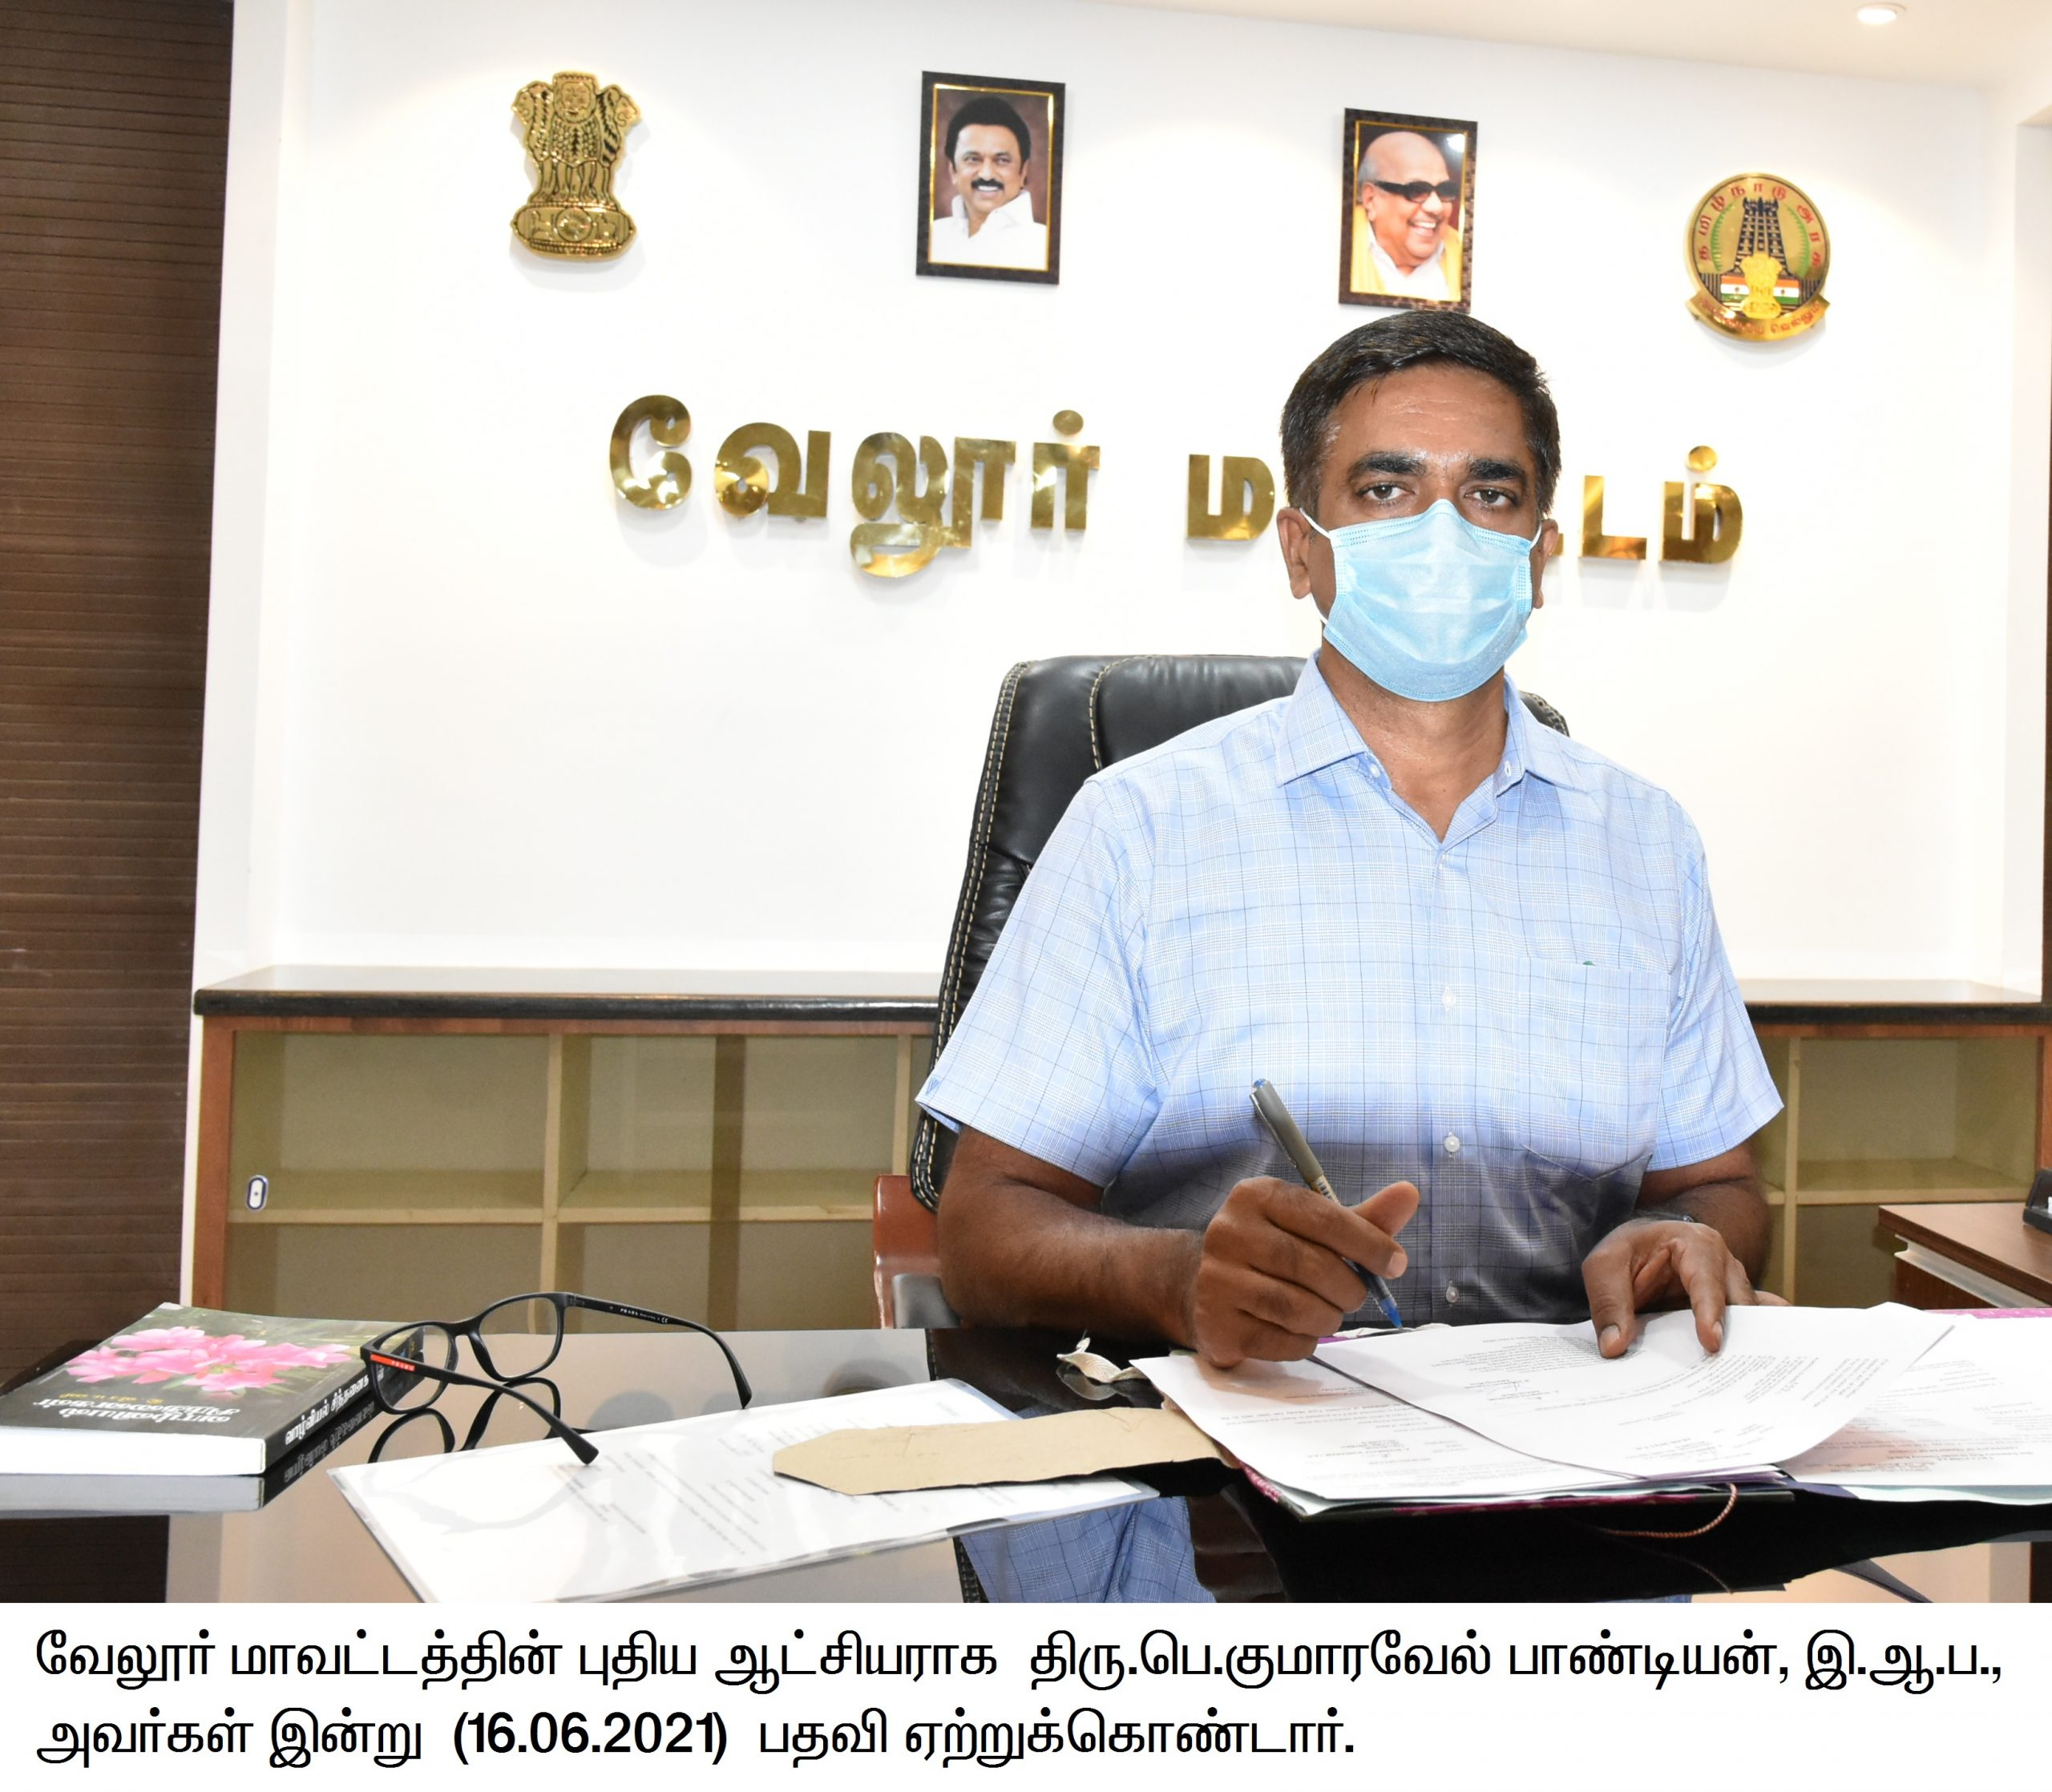 New Collector Joined 16/06/2021